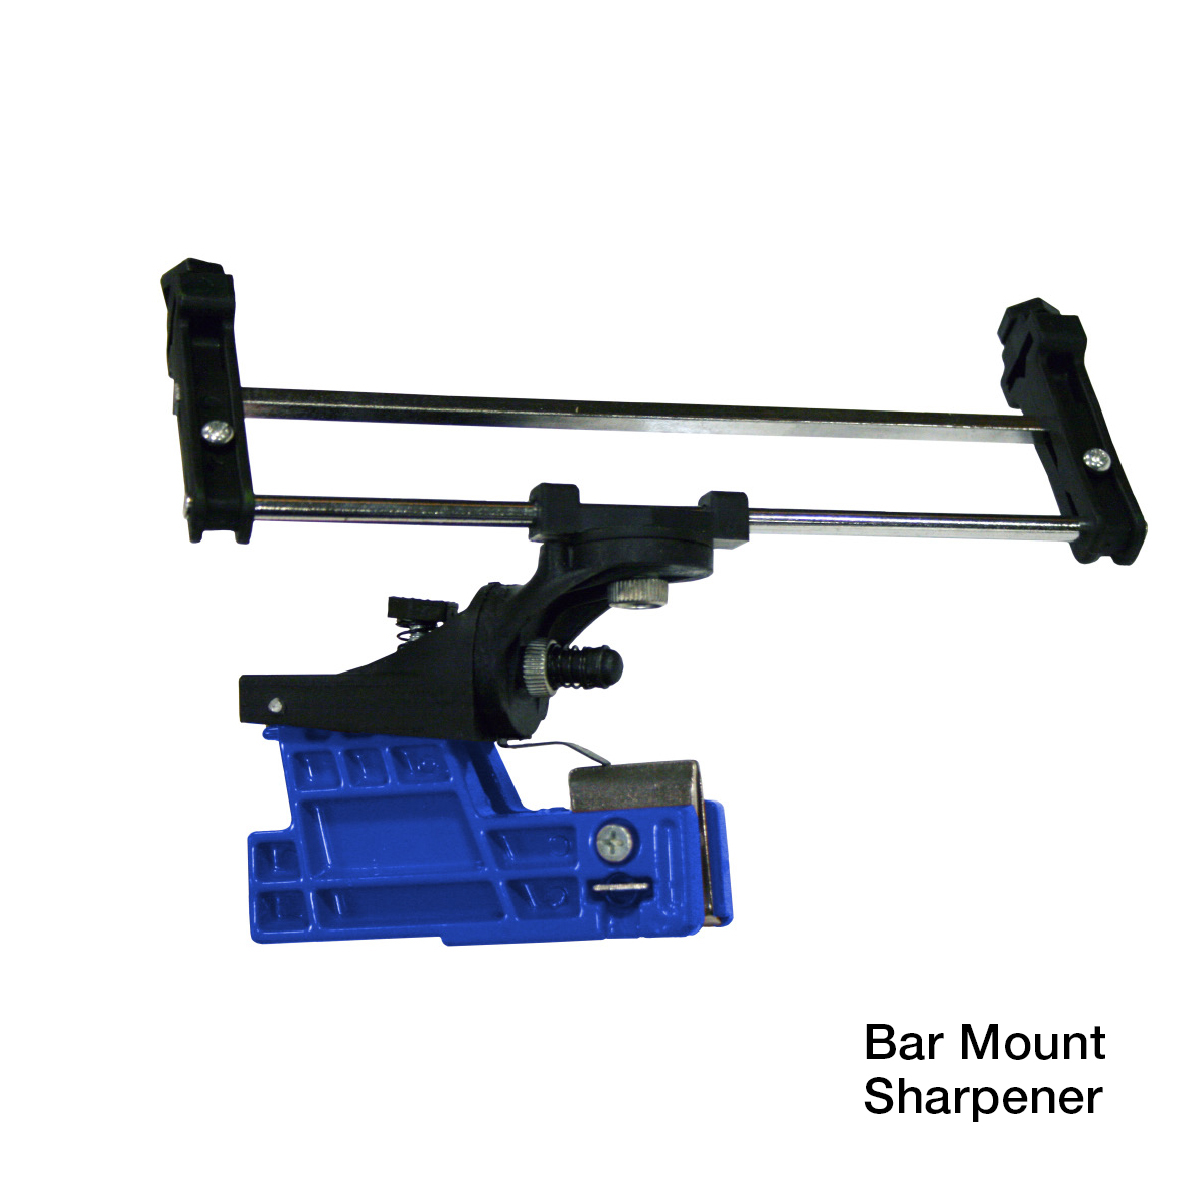 Bar Mount Sharpener